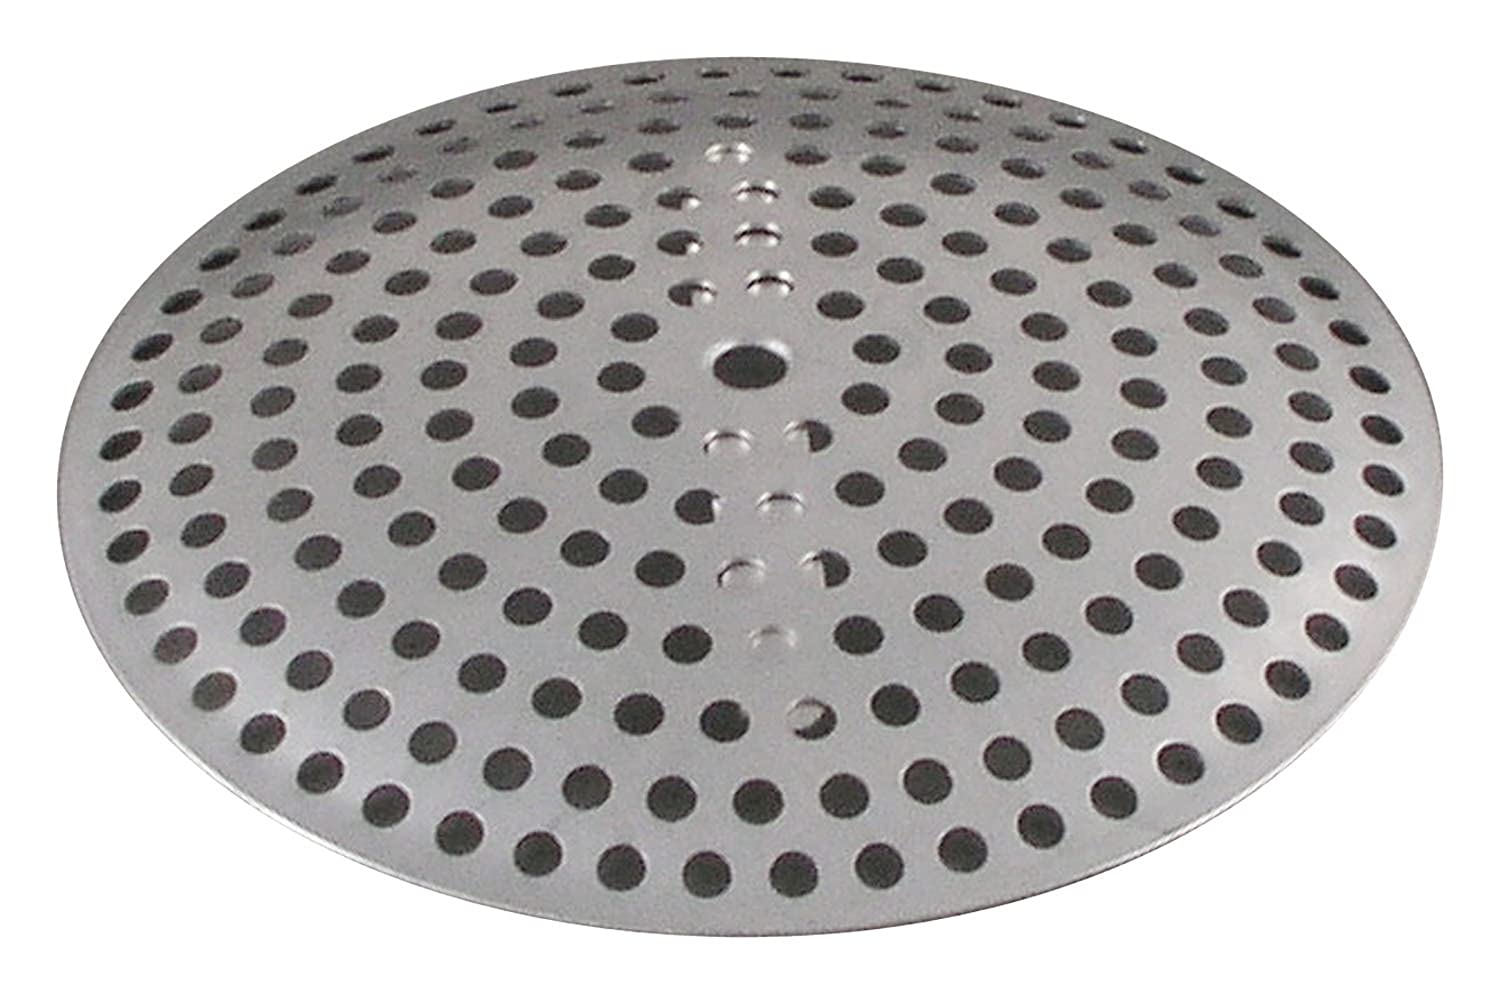 LDR 501 3220 Flat Drain Guard   Fits All Standard Strainers (3 1/16 Inches  Diameter)   Bathroom Sink And Tub Drain Strainers   Amazon.com